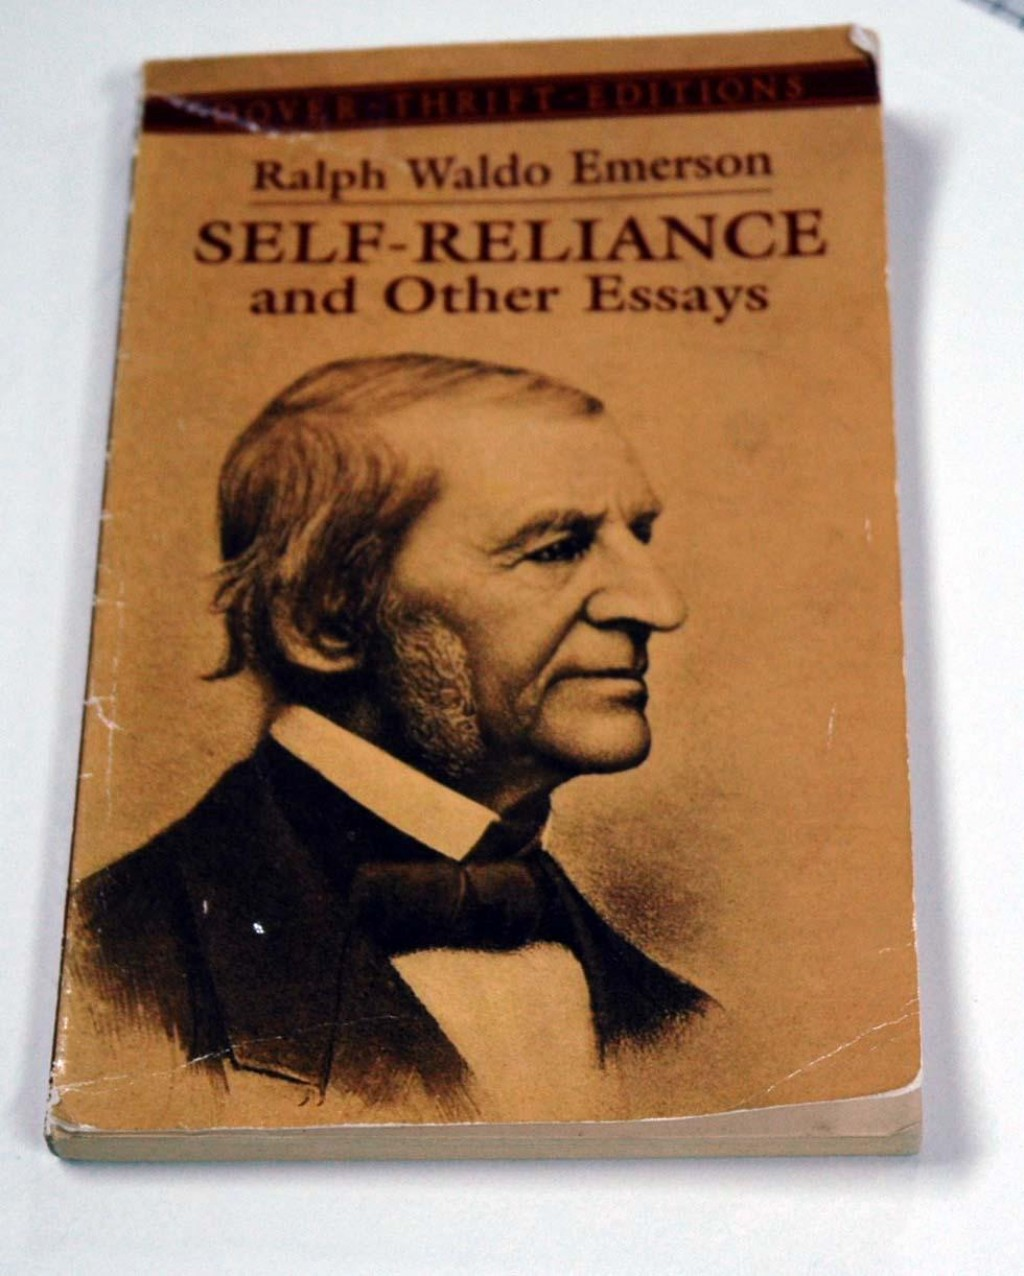 002 Self Reliance And Other Essays Essay Formidable Ekşi Self-reliance (dover Thrift Editions) Pdf Epub Large